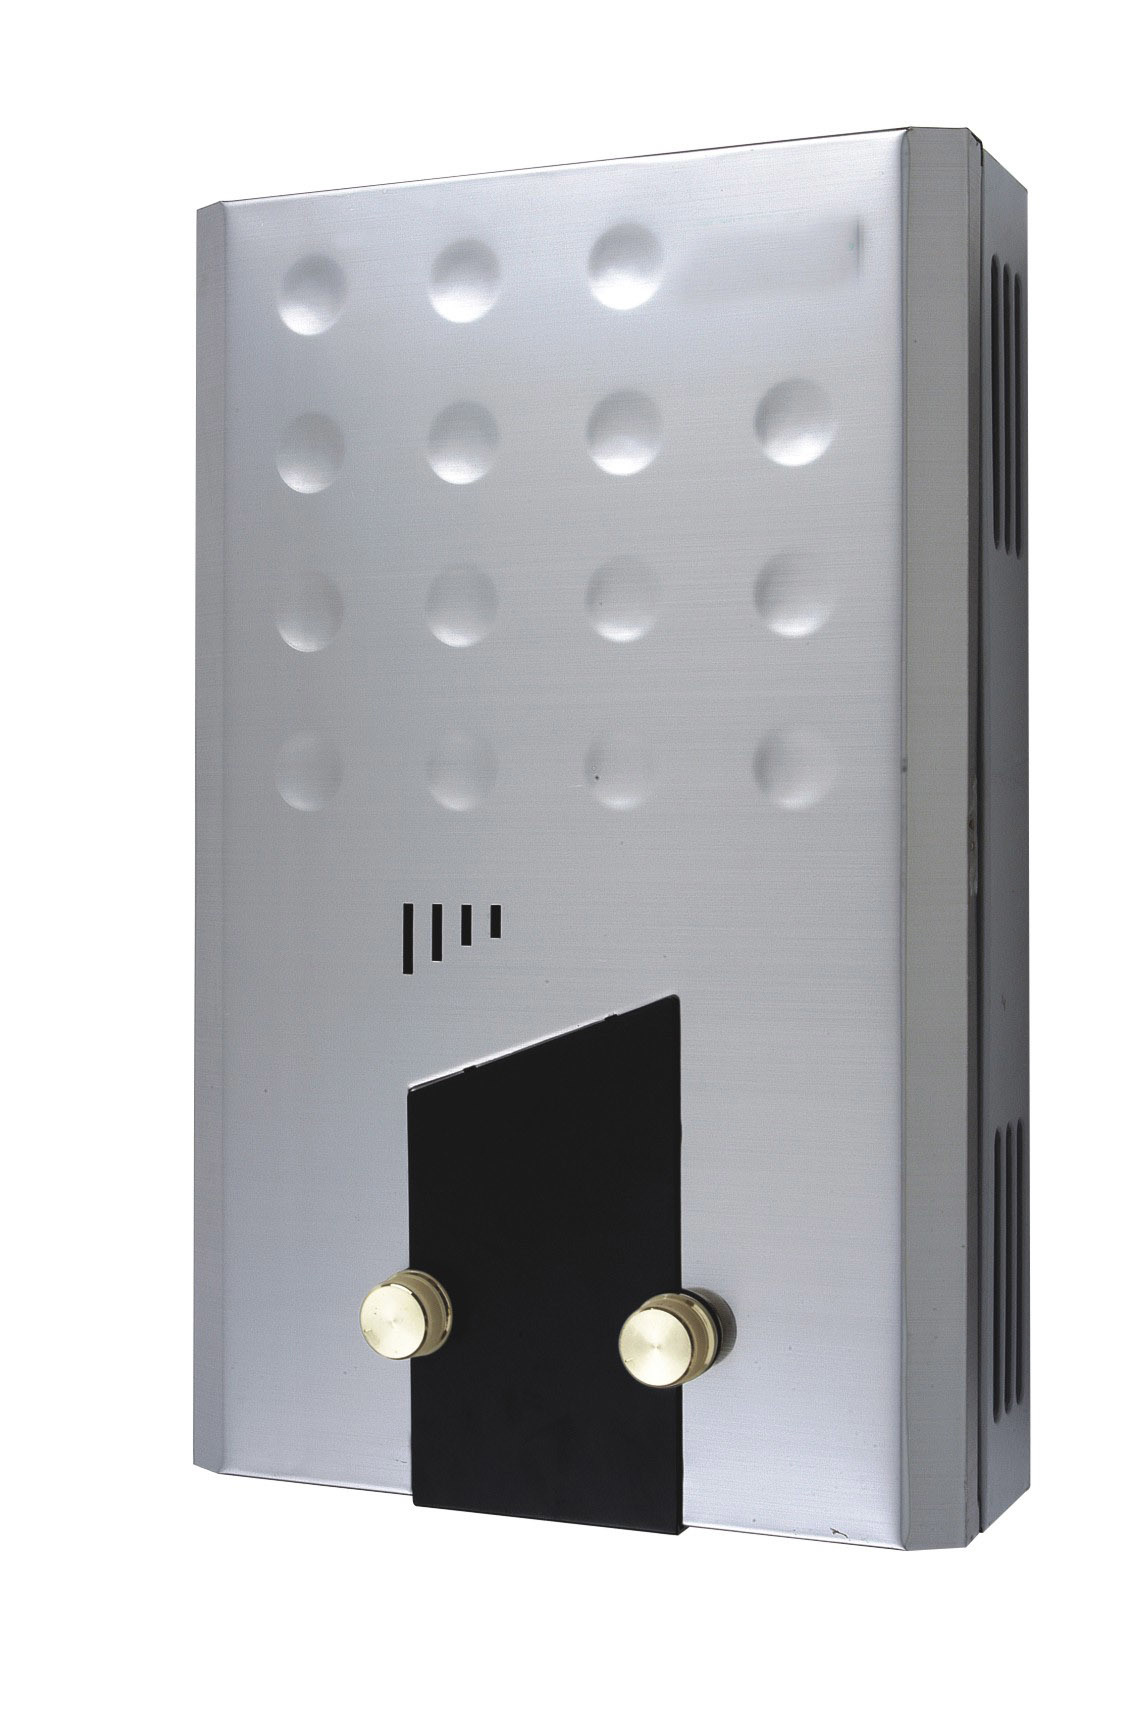 Elite Gas Water Heater with Built in Safety (S6)